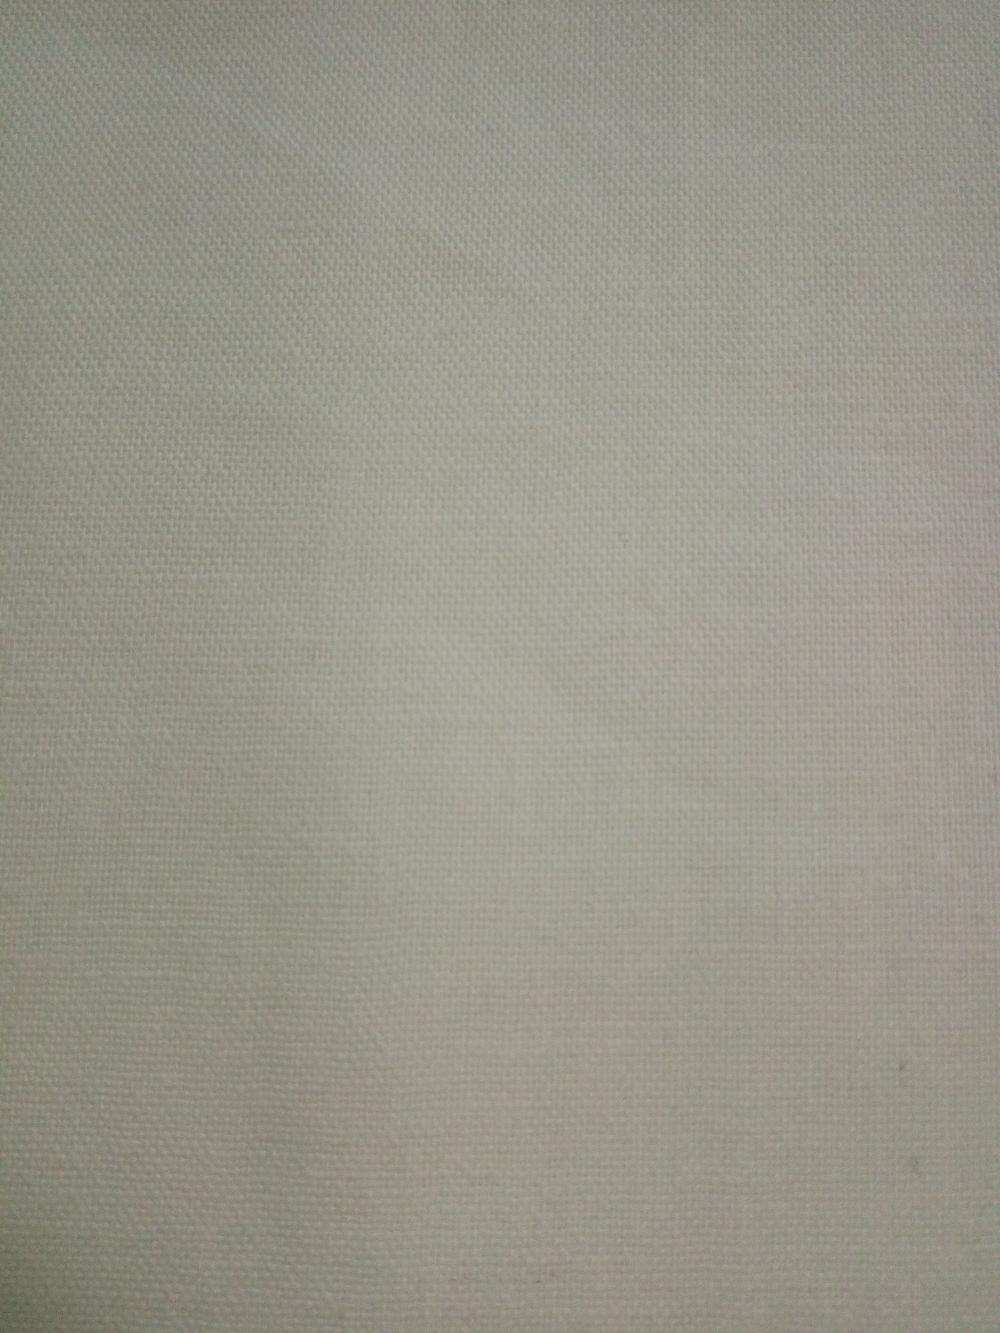 White Cotton Fabric